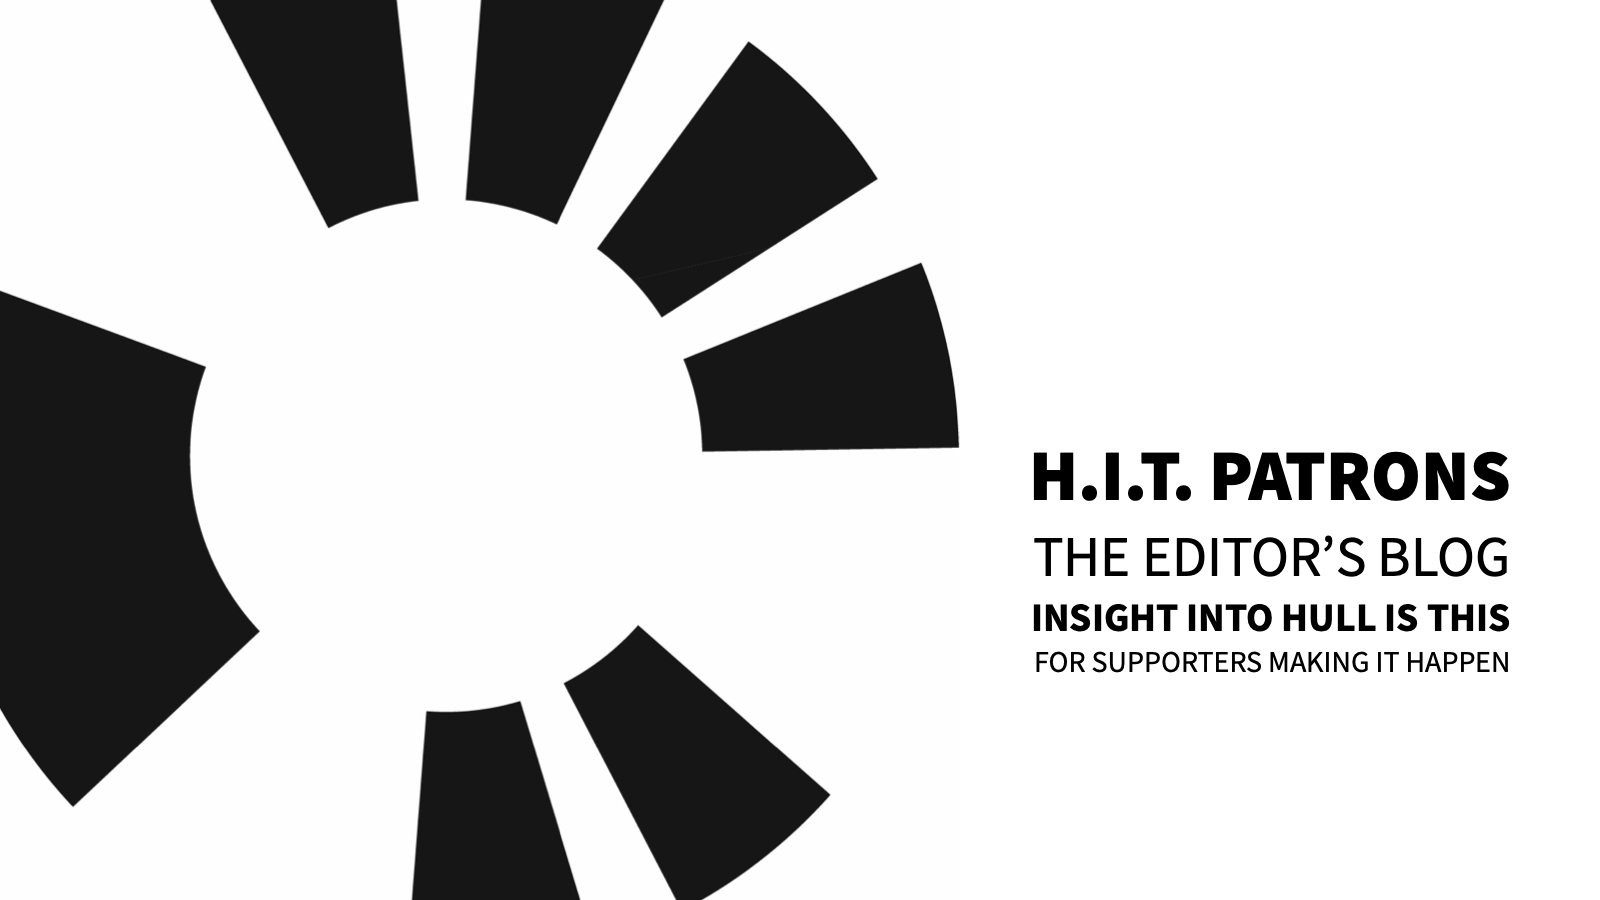 HIT EDITORS BLOG